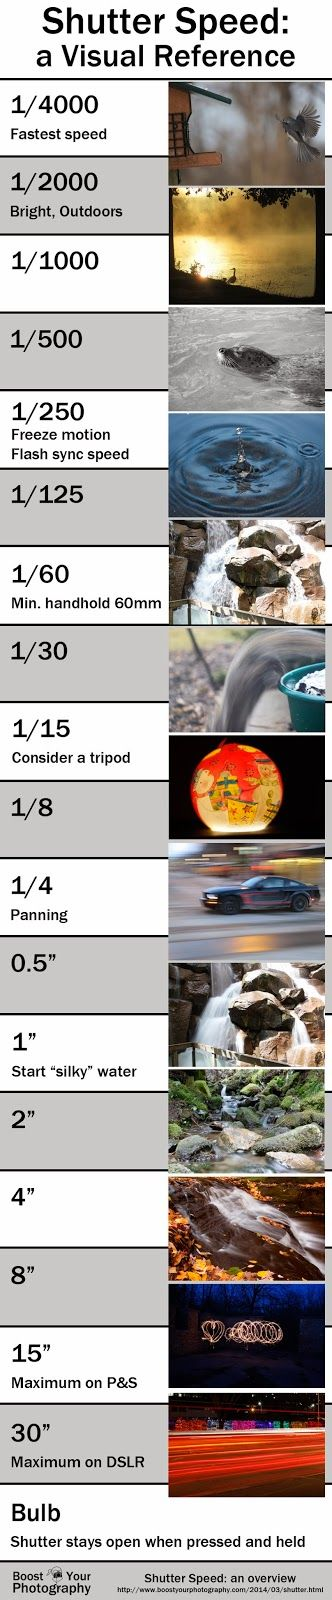 Shutter Speed: an overview. Excellent reference point. Print and shove in your…